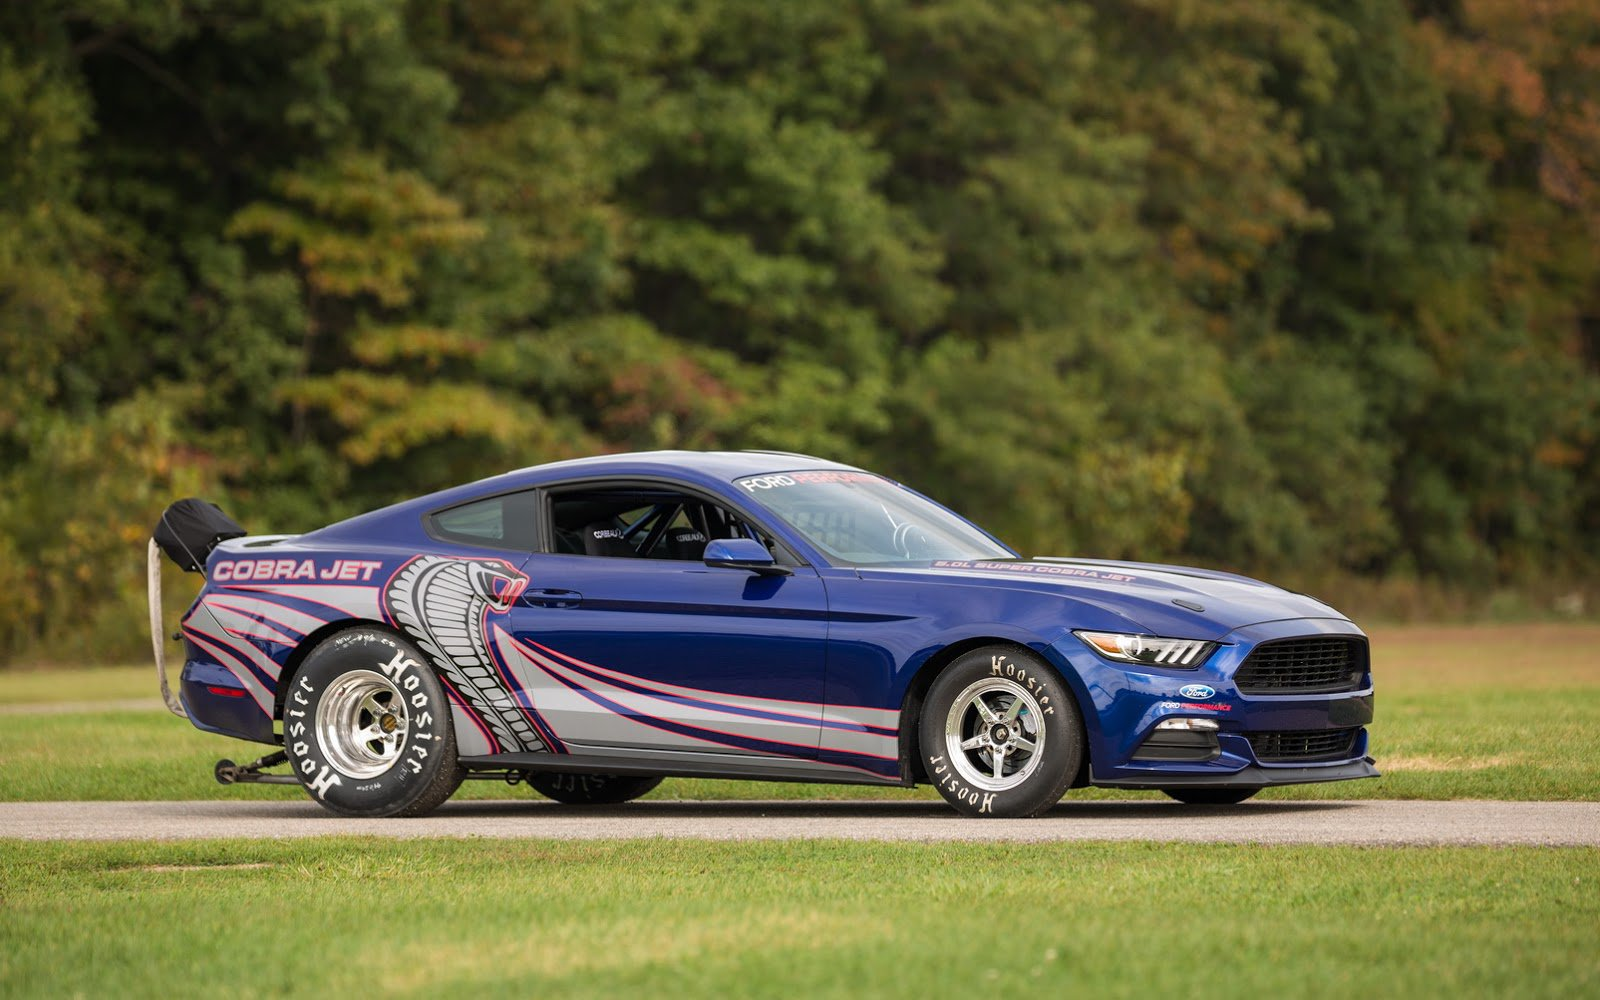 The new limited Mustang Cobra Jet was revealed by Ford